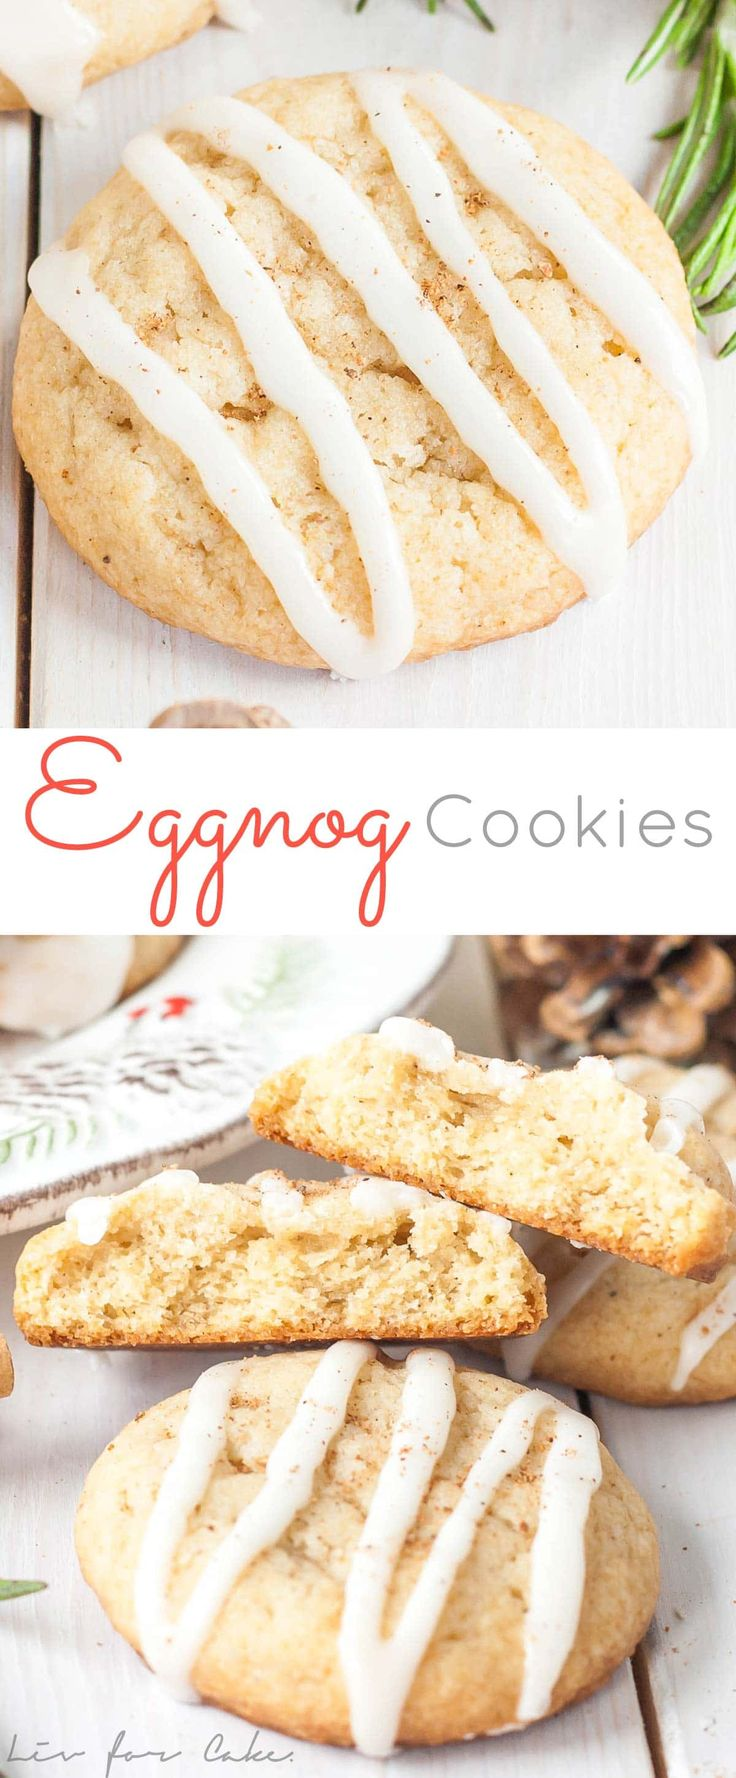 These Eggnog Cookies transform your favourite holiday beverage into a delicious handheld treat! | livforcake.com via @livforcake